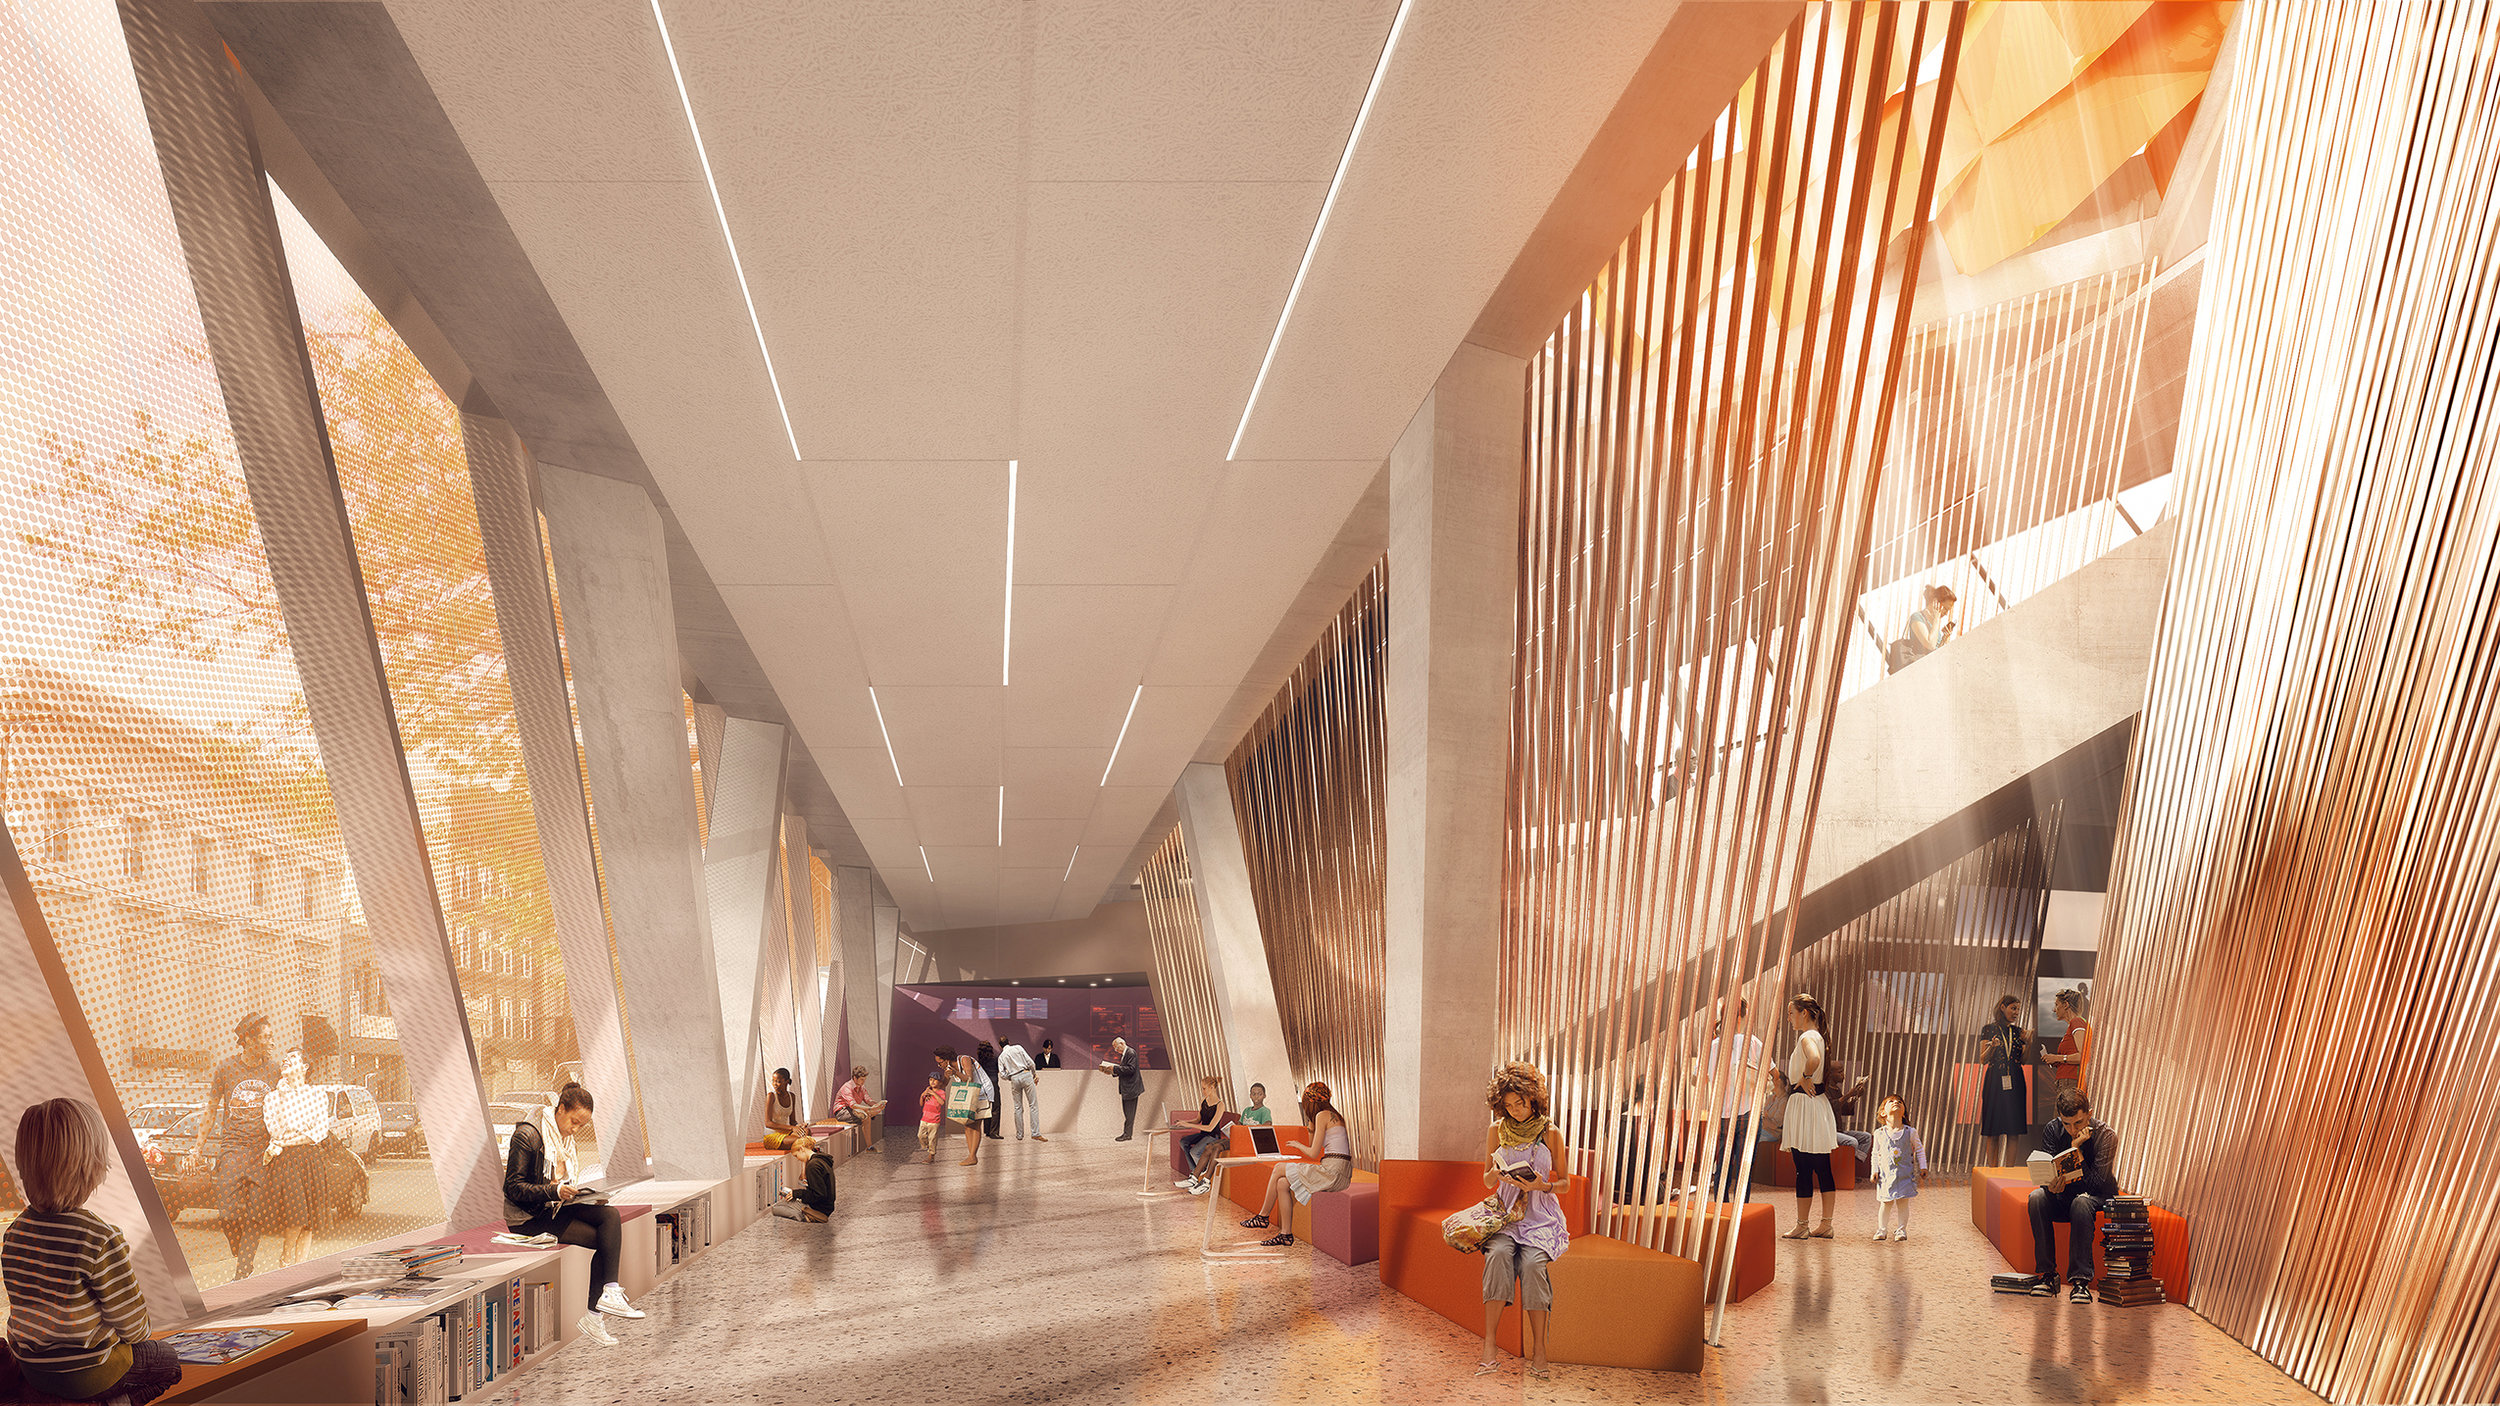 """An artist's rendering of the inside of the new Far Rockaway Library. The designers say the building's """"inverted pyramidal atrium"""" will allow natural light to illuminate the space. Renderings courtesy of Queens Library."""